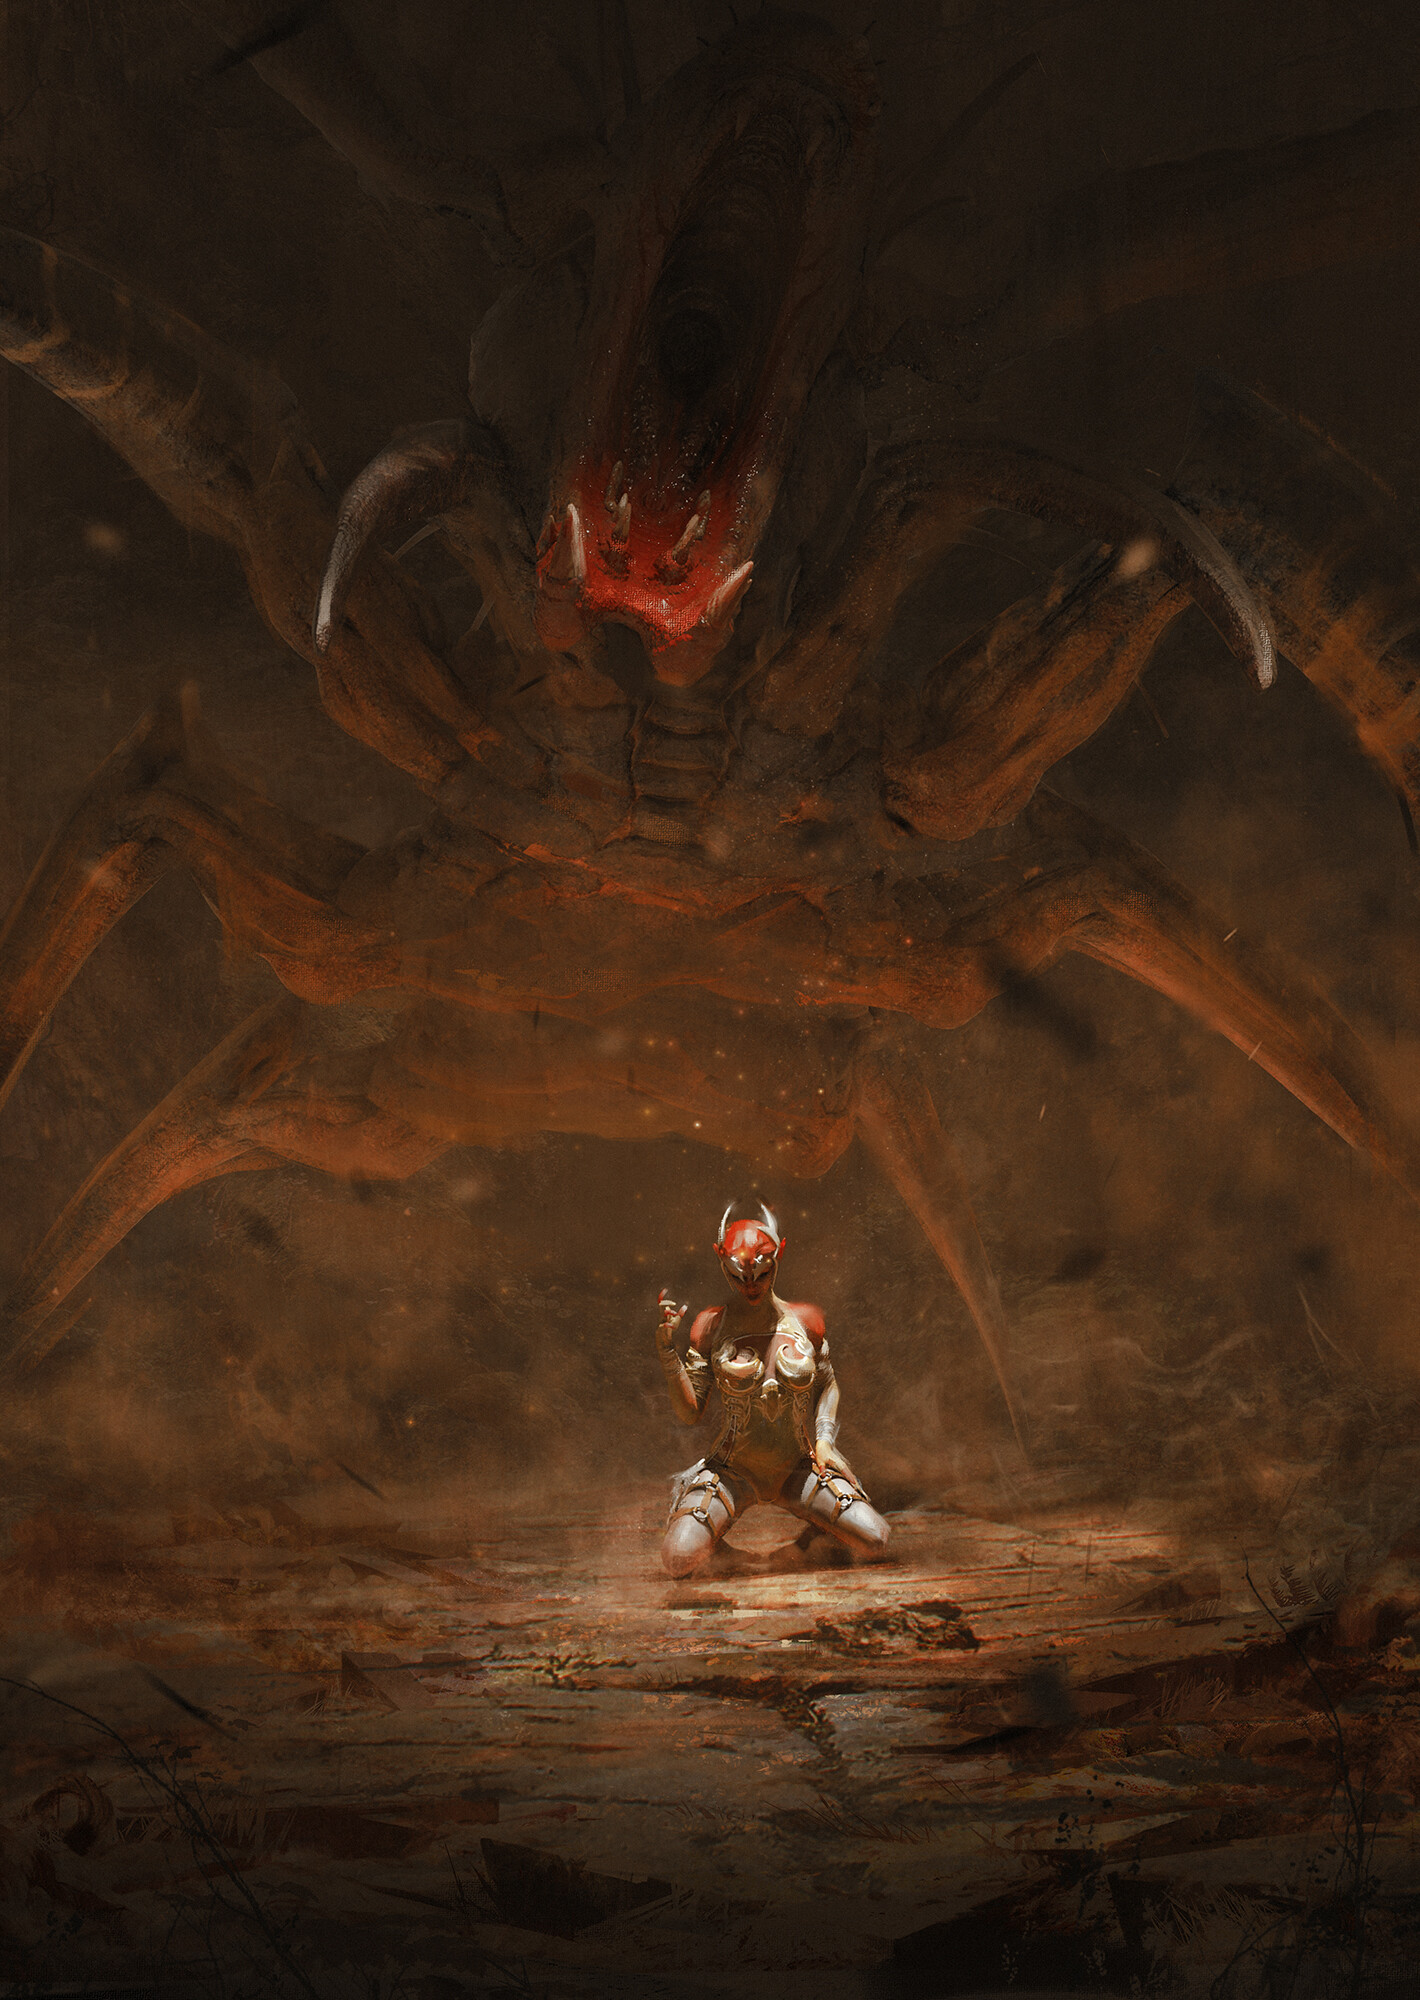 The Amazing Fantasy Art of Emilis Emka